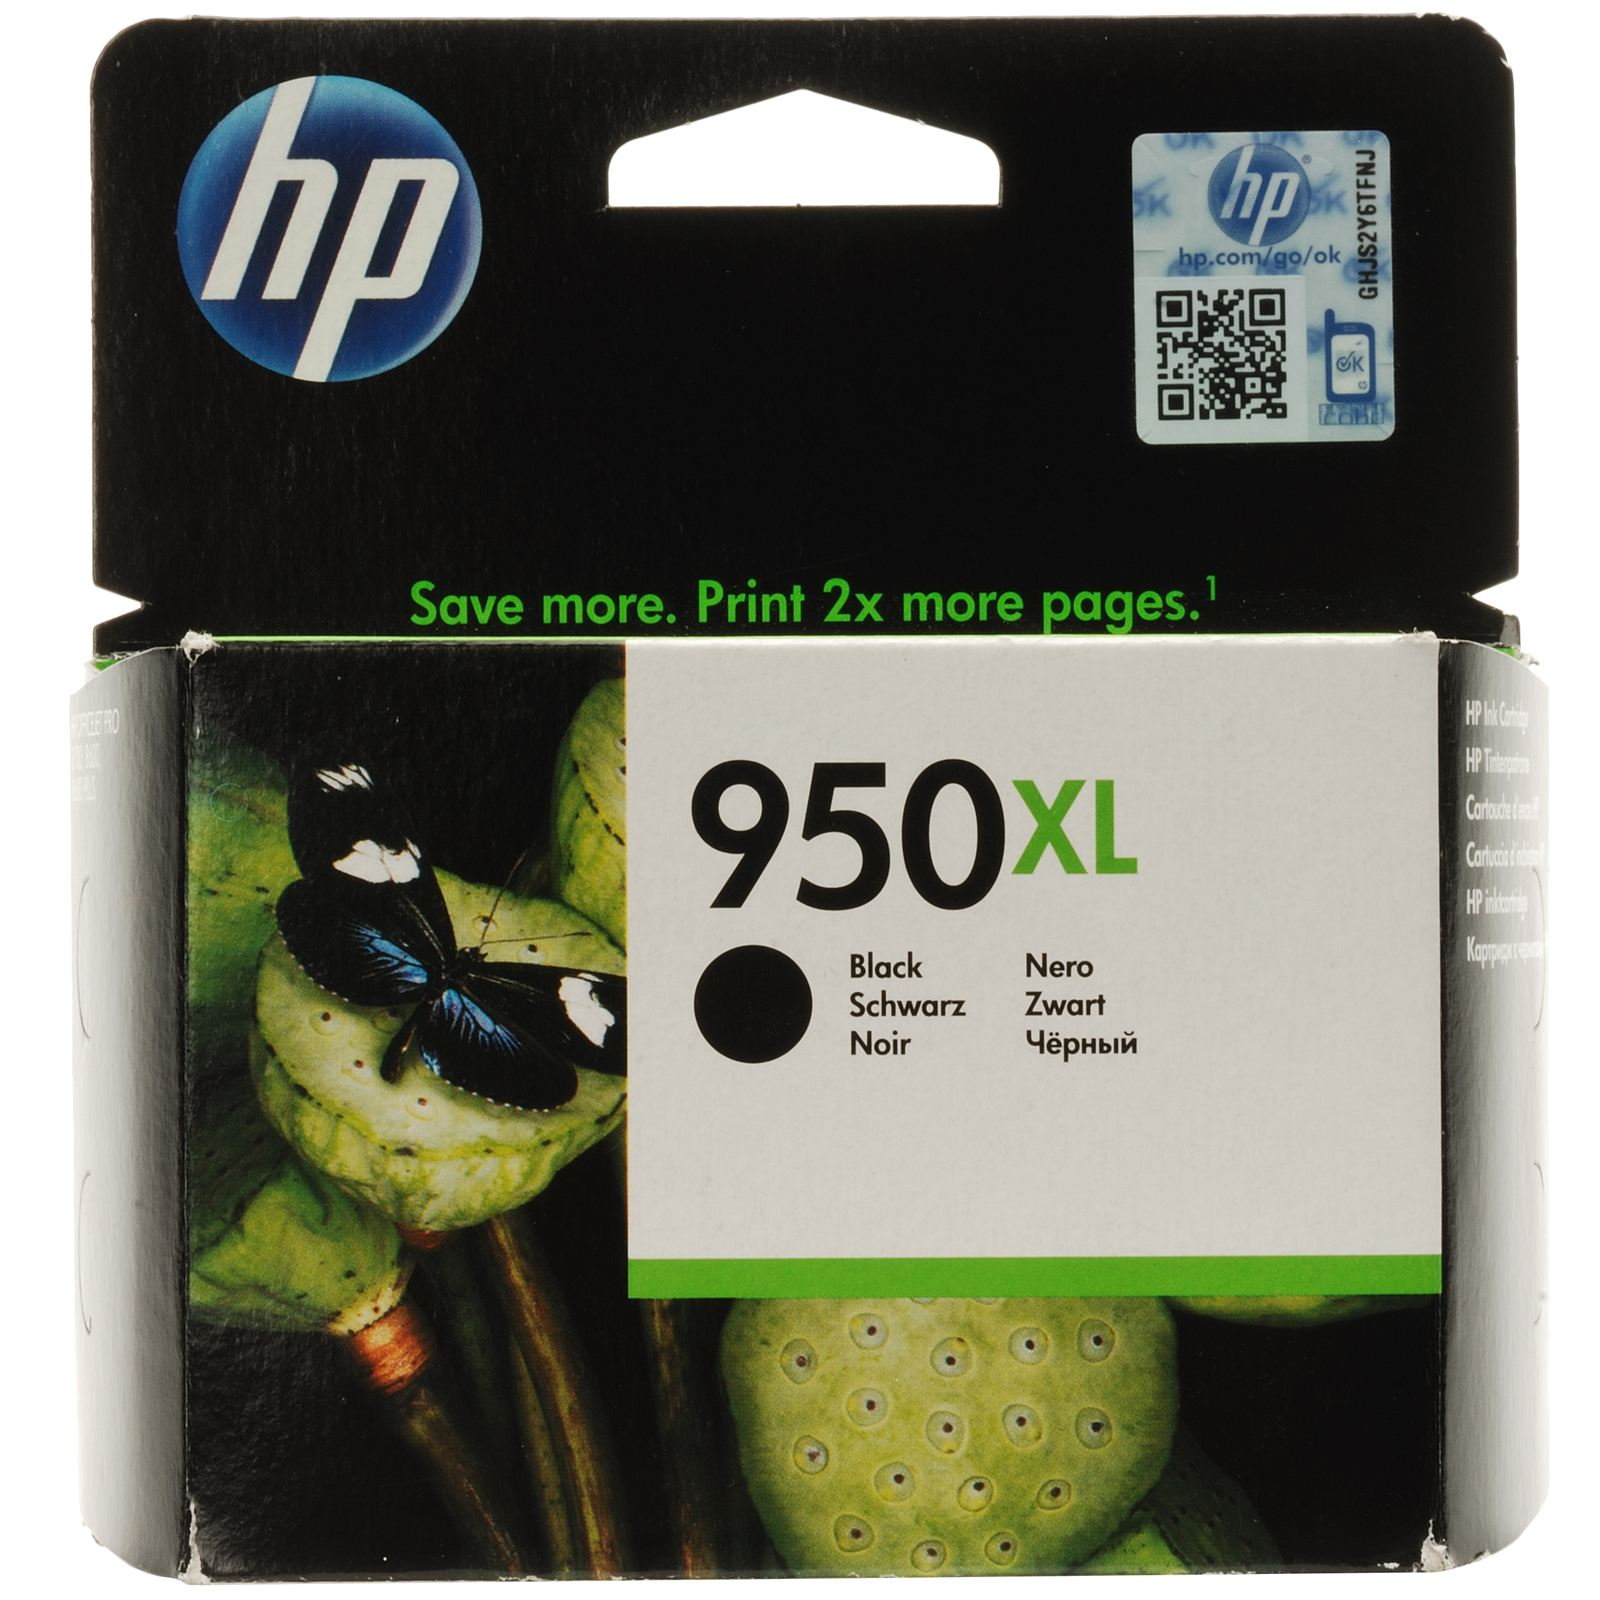 Cartus negru original HP 950XL Officejet Pro 8600 e-All-in-One